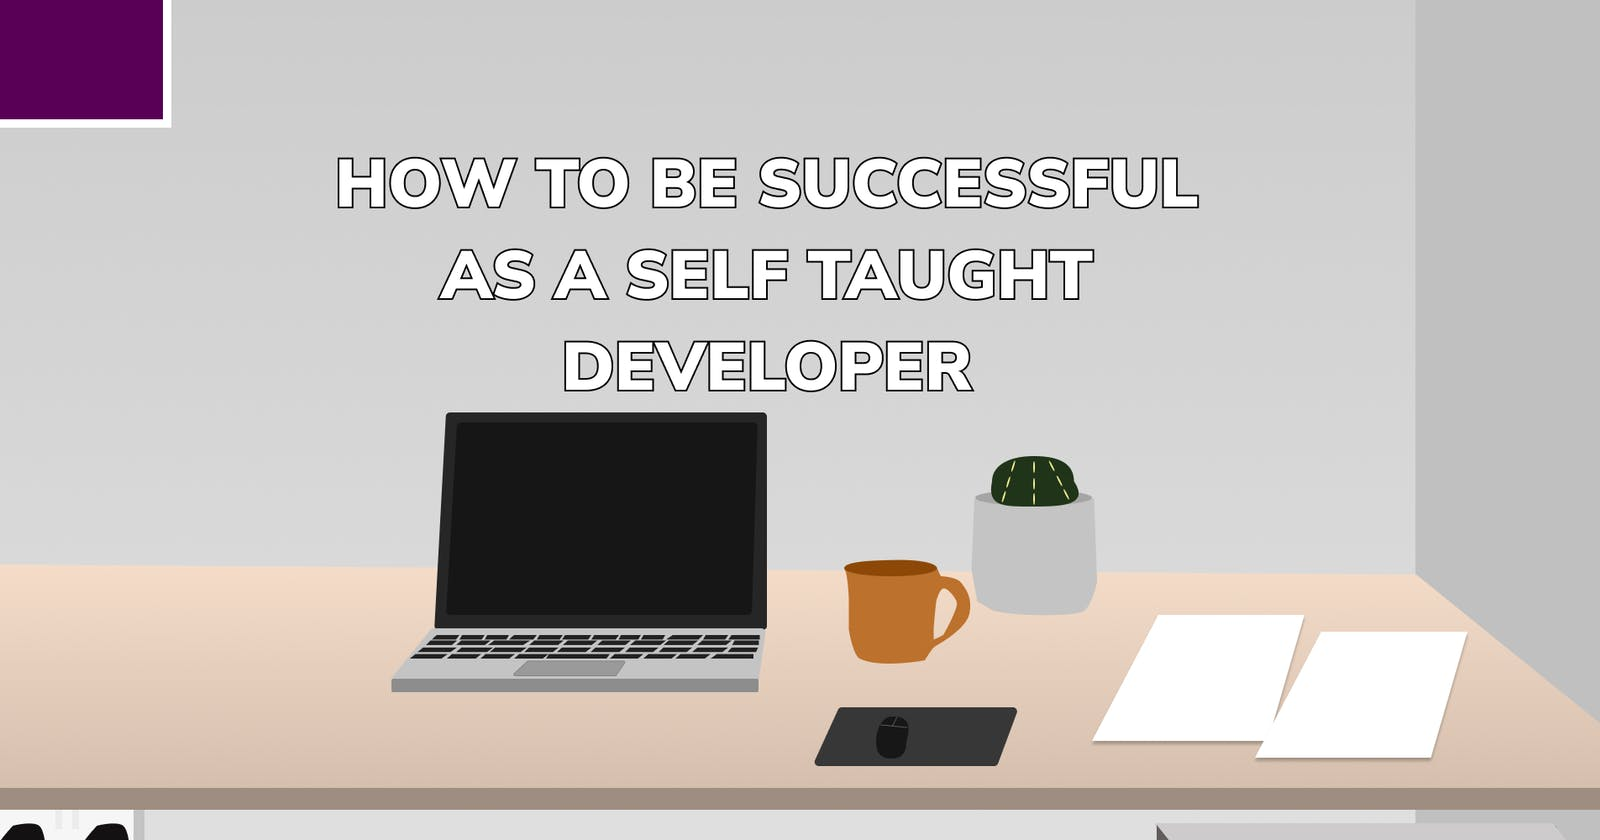 How to be successful as a self taught developer